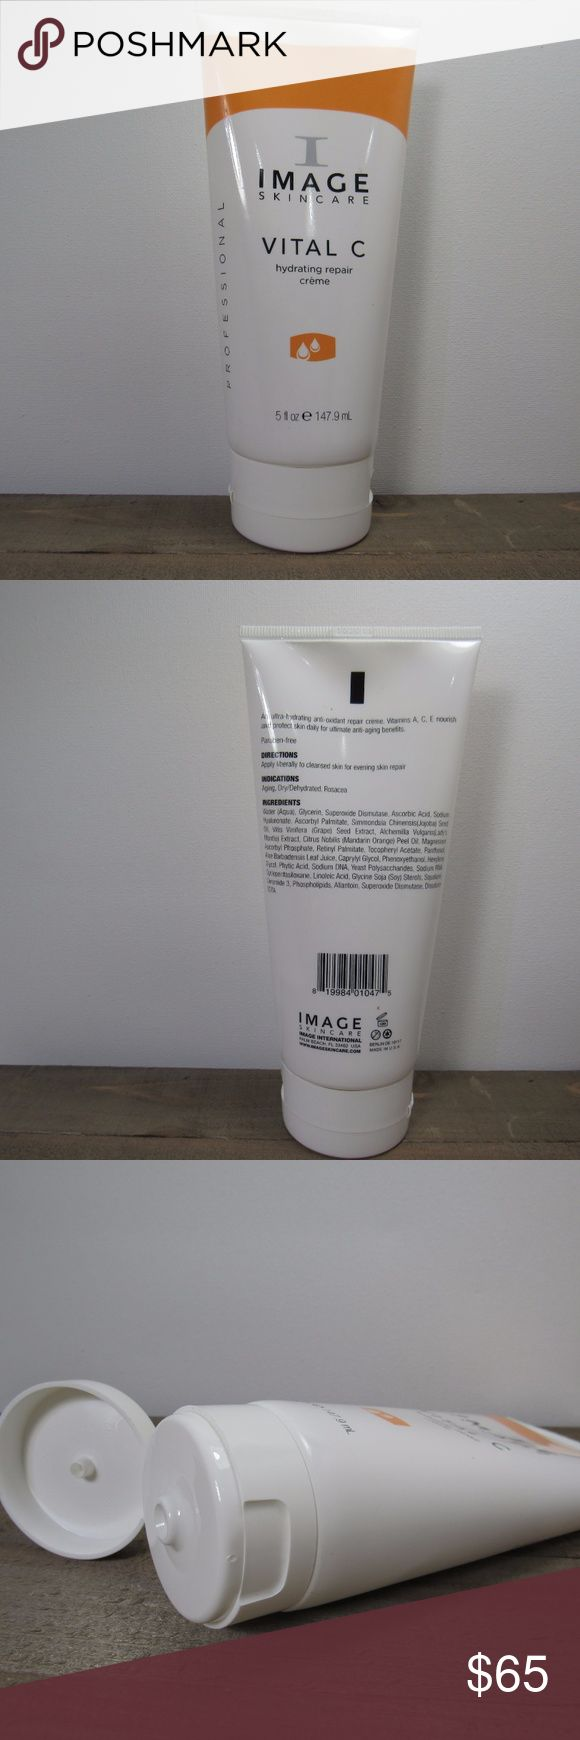 Image Skincare Vital C Hydrating Repair Creme 5 oz This Hydrating Repair Creme is the backbar size from Image Skincare. I use this and love it, and got too many in my last order.  Nothing wrong with it, just didn't need this extra tube.  Description from Image Skincare:  This rich, reparative crème quenches dryness, soothes redness and comforts irritated skin. Ceramides help to prevent the evaporation of moisture by forming a protective barrier on the skin, while vitamins nourish and…